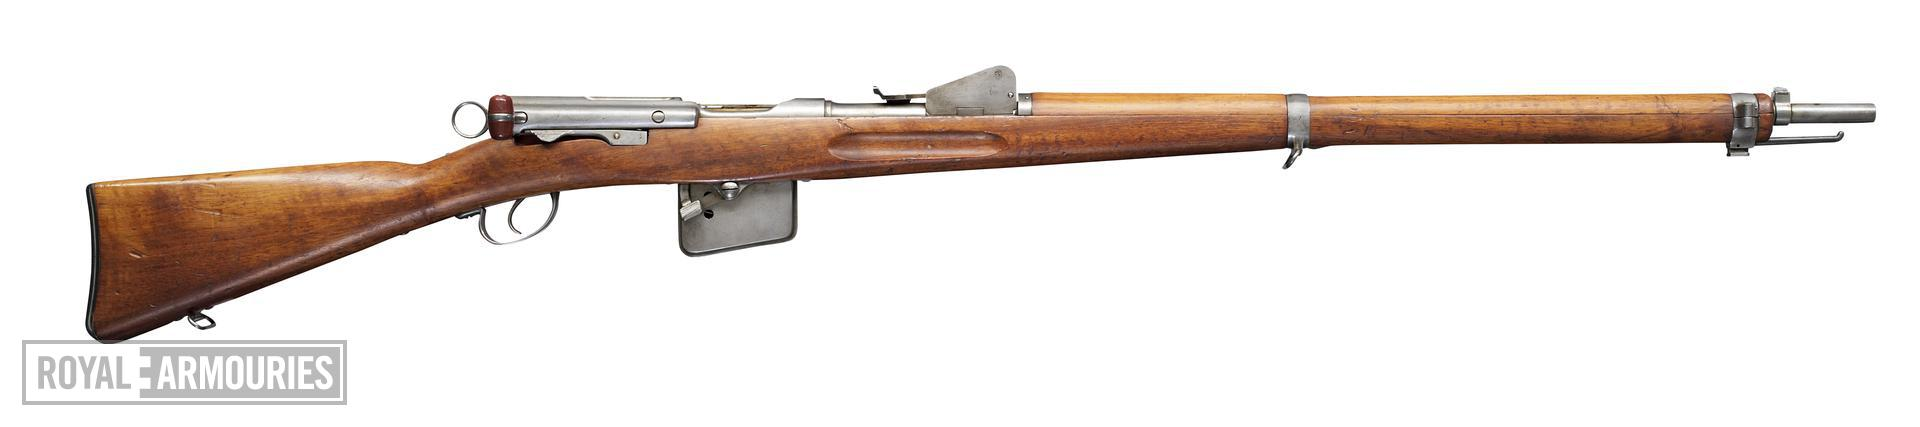 Centrefire bolt-action rifle - Experimental Schmidt-Rubin Model 1889